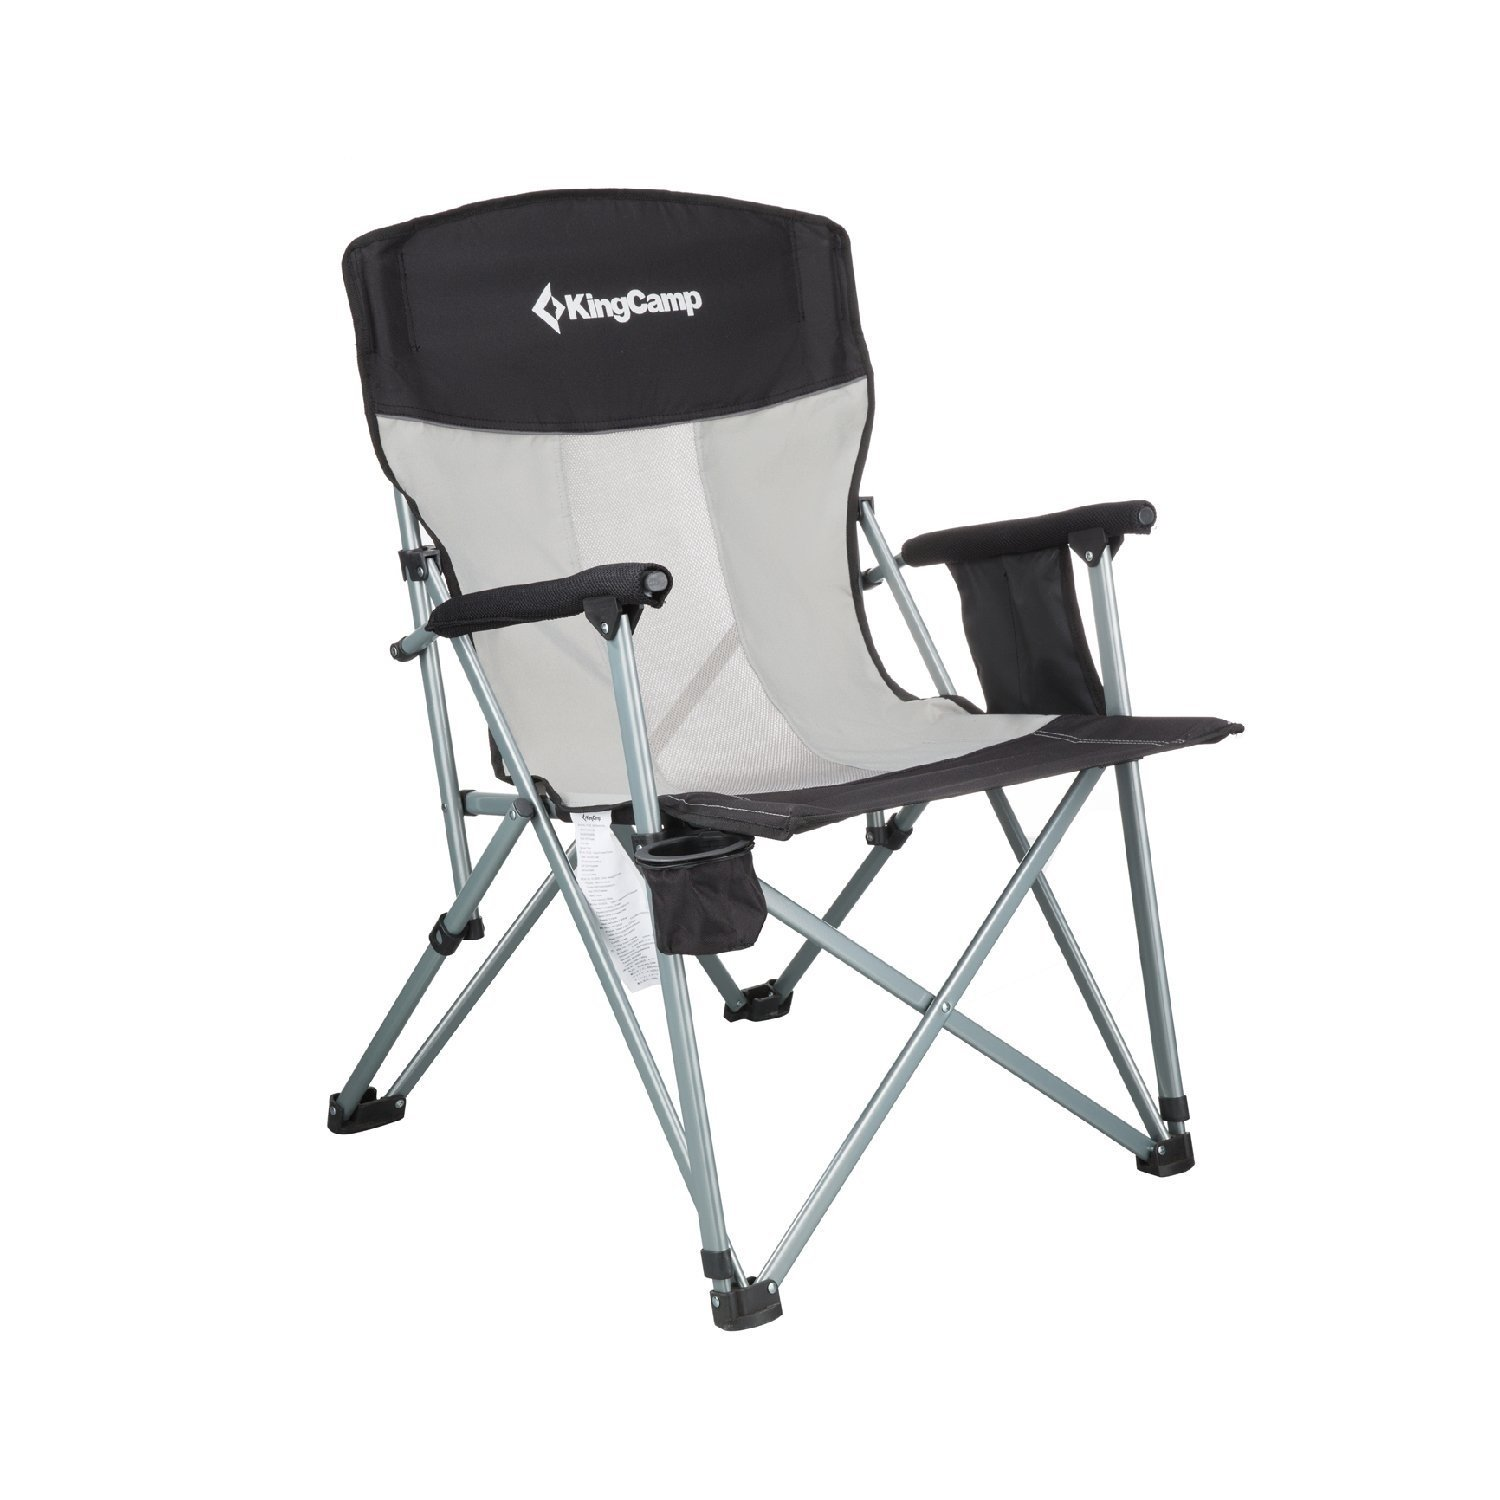 HEAVY DUTY CAMPING CHAIR LUXURY PADDED FOLDING HIGH BACK DIRECTORS W//CUP HOLDER